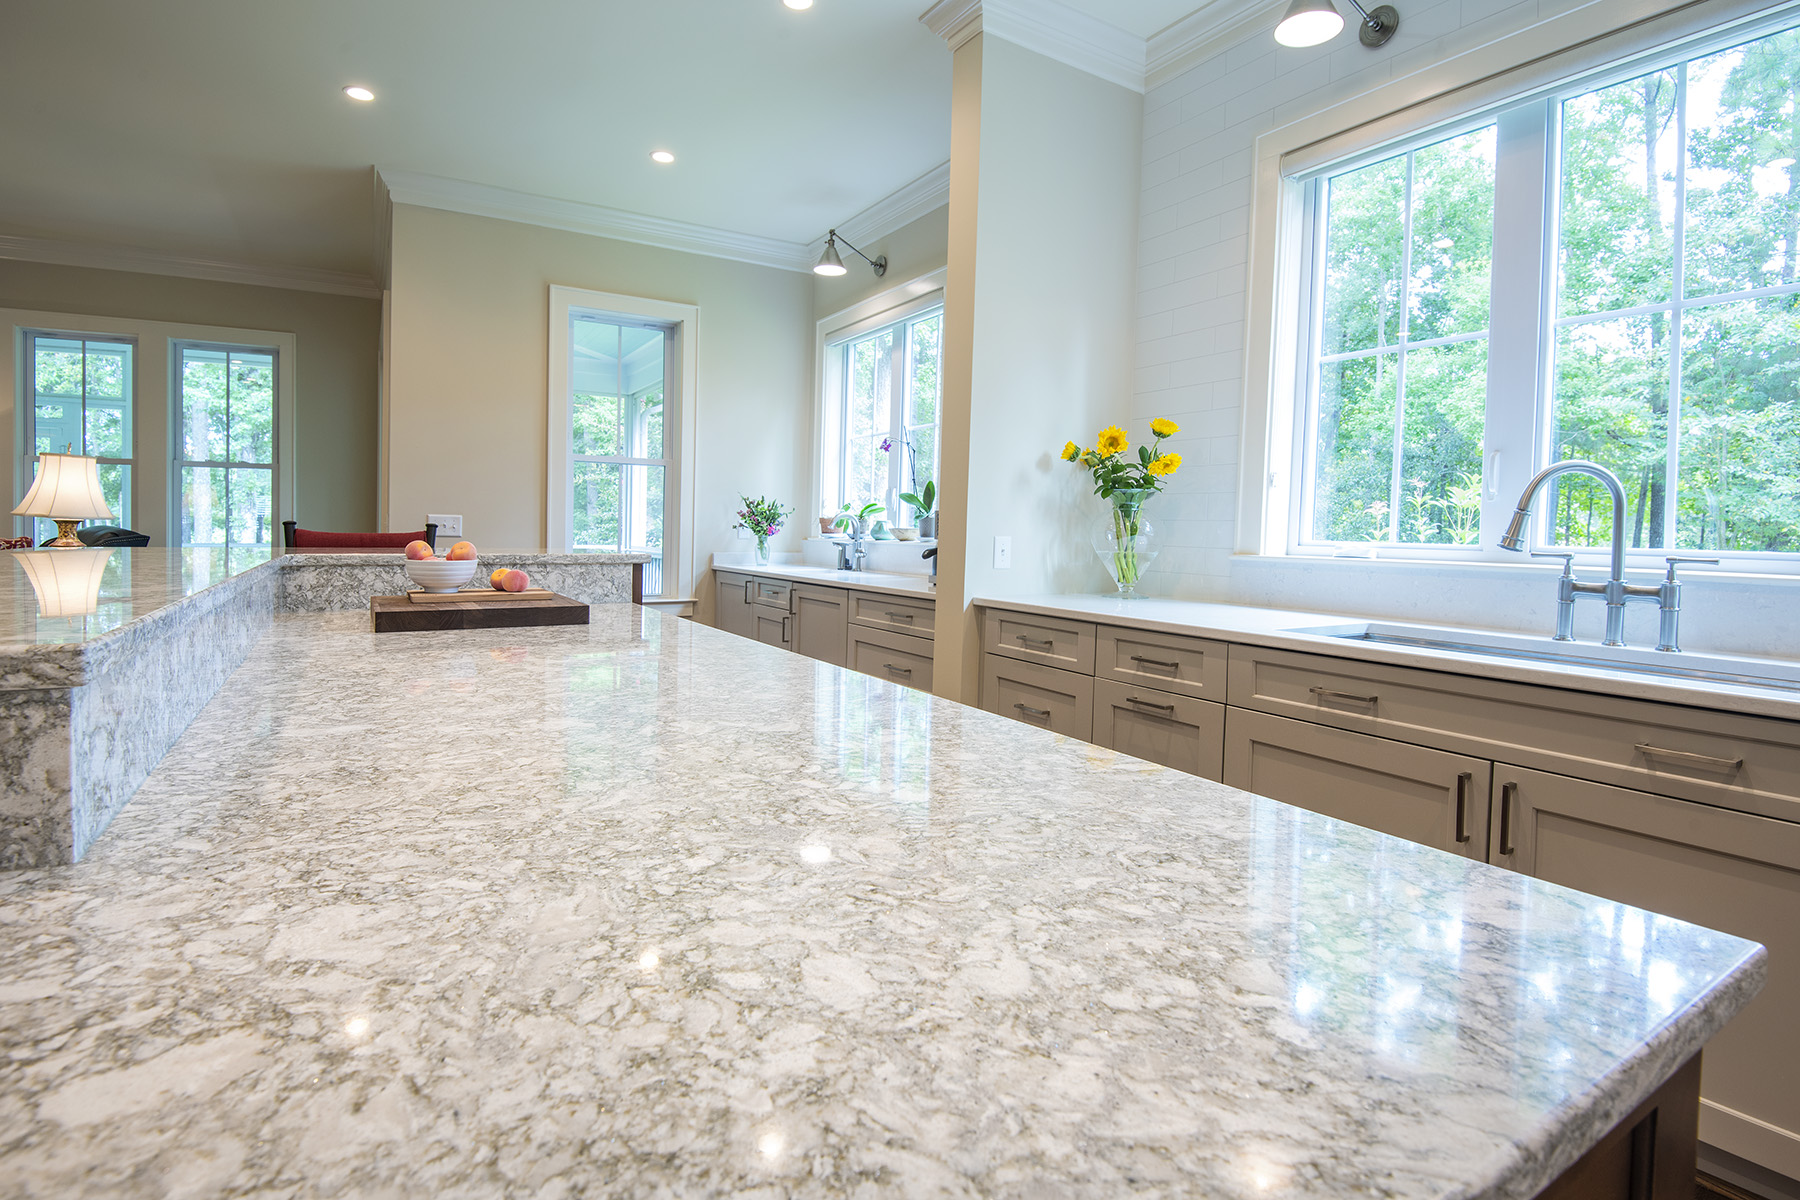 Choosing the Best Countertop Material for Your Remodel